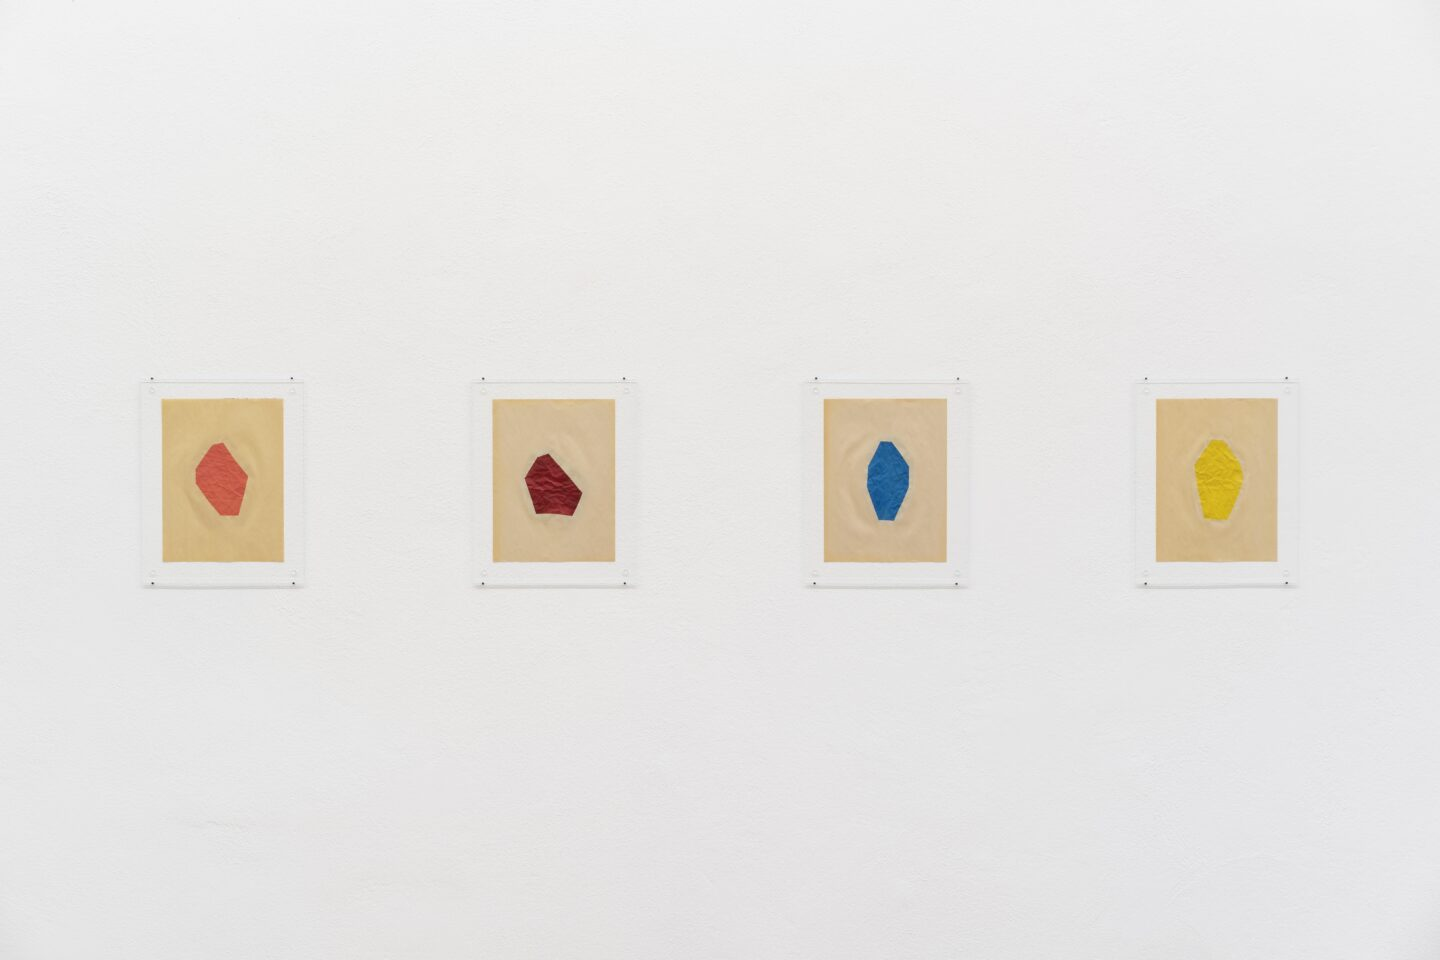 Exhibition View Marc Camille Chaimowicz Soloshow «Dear Valérie…; view on Nancy Brooks Brody, Big Lovely, Yellow, Blue, Red and Pink, all 2013» at Kunsthalle Bern, Bern, 2020 / Photo: Gunnar Meier / Courtesy: the artist and Kunsthalle Bern